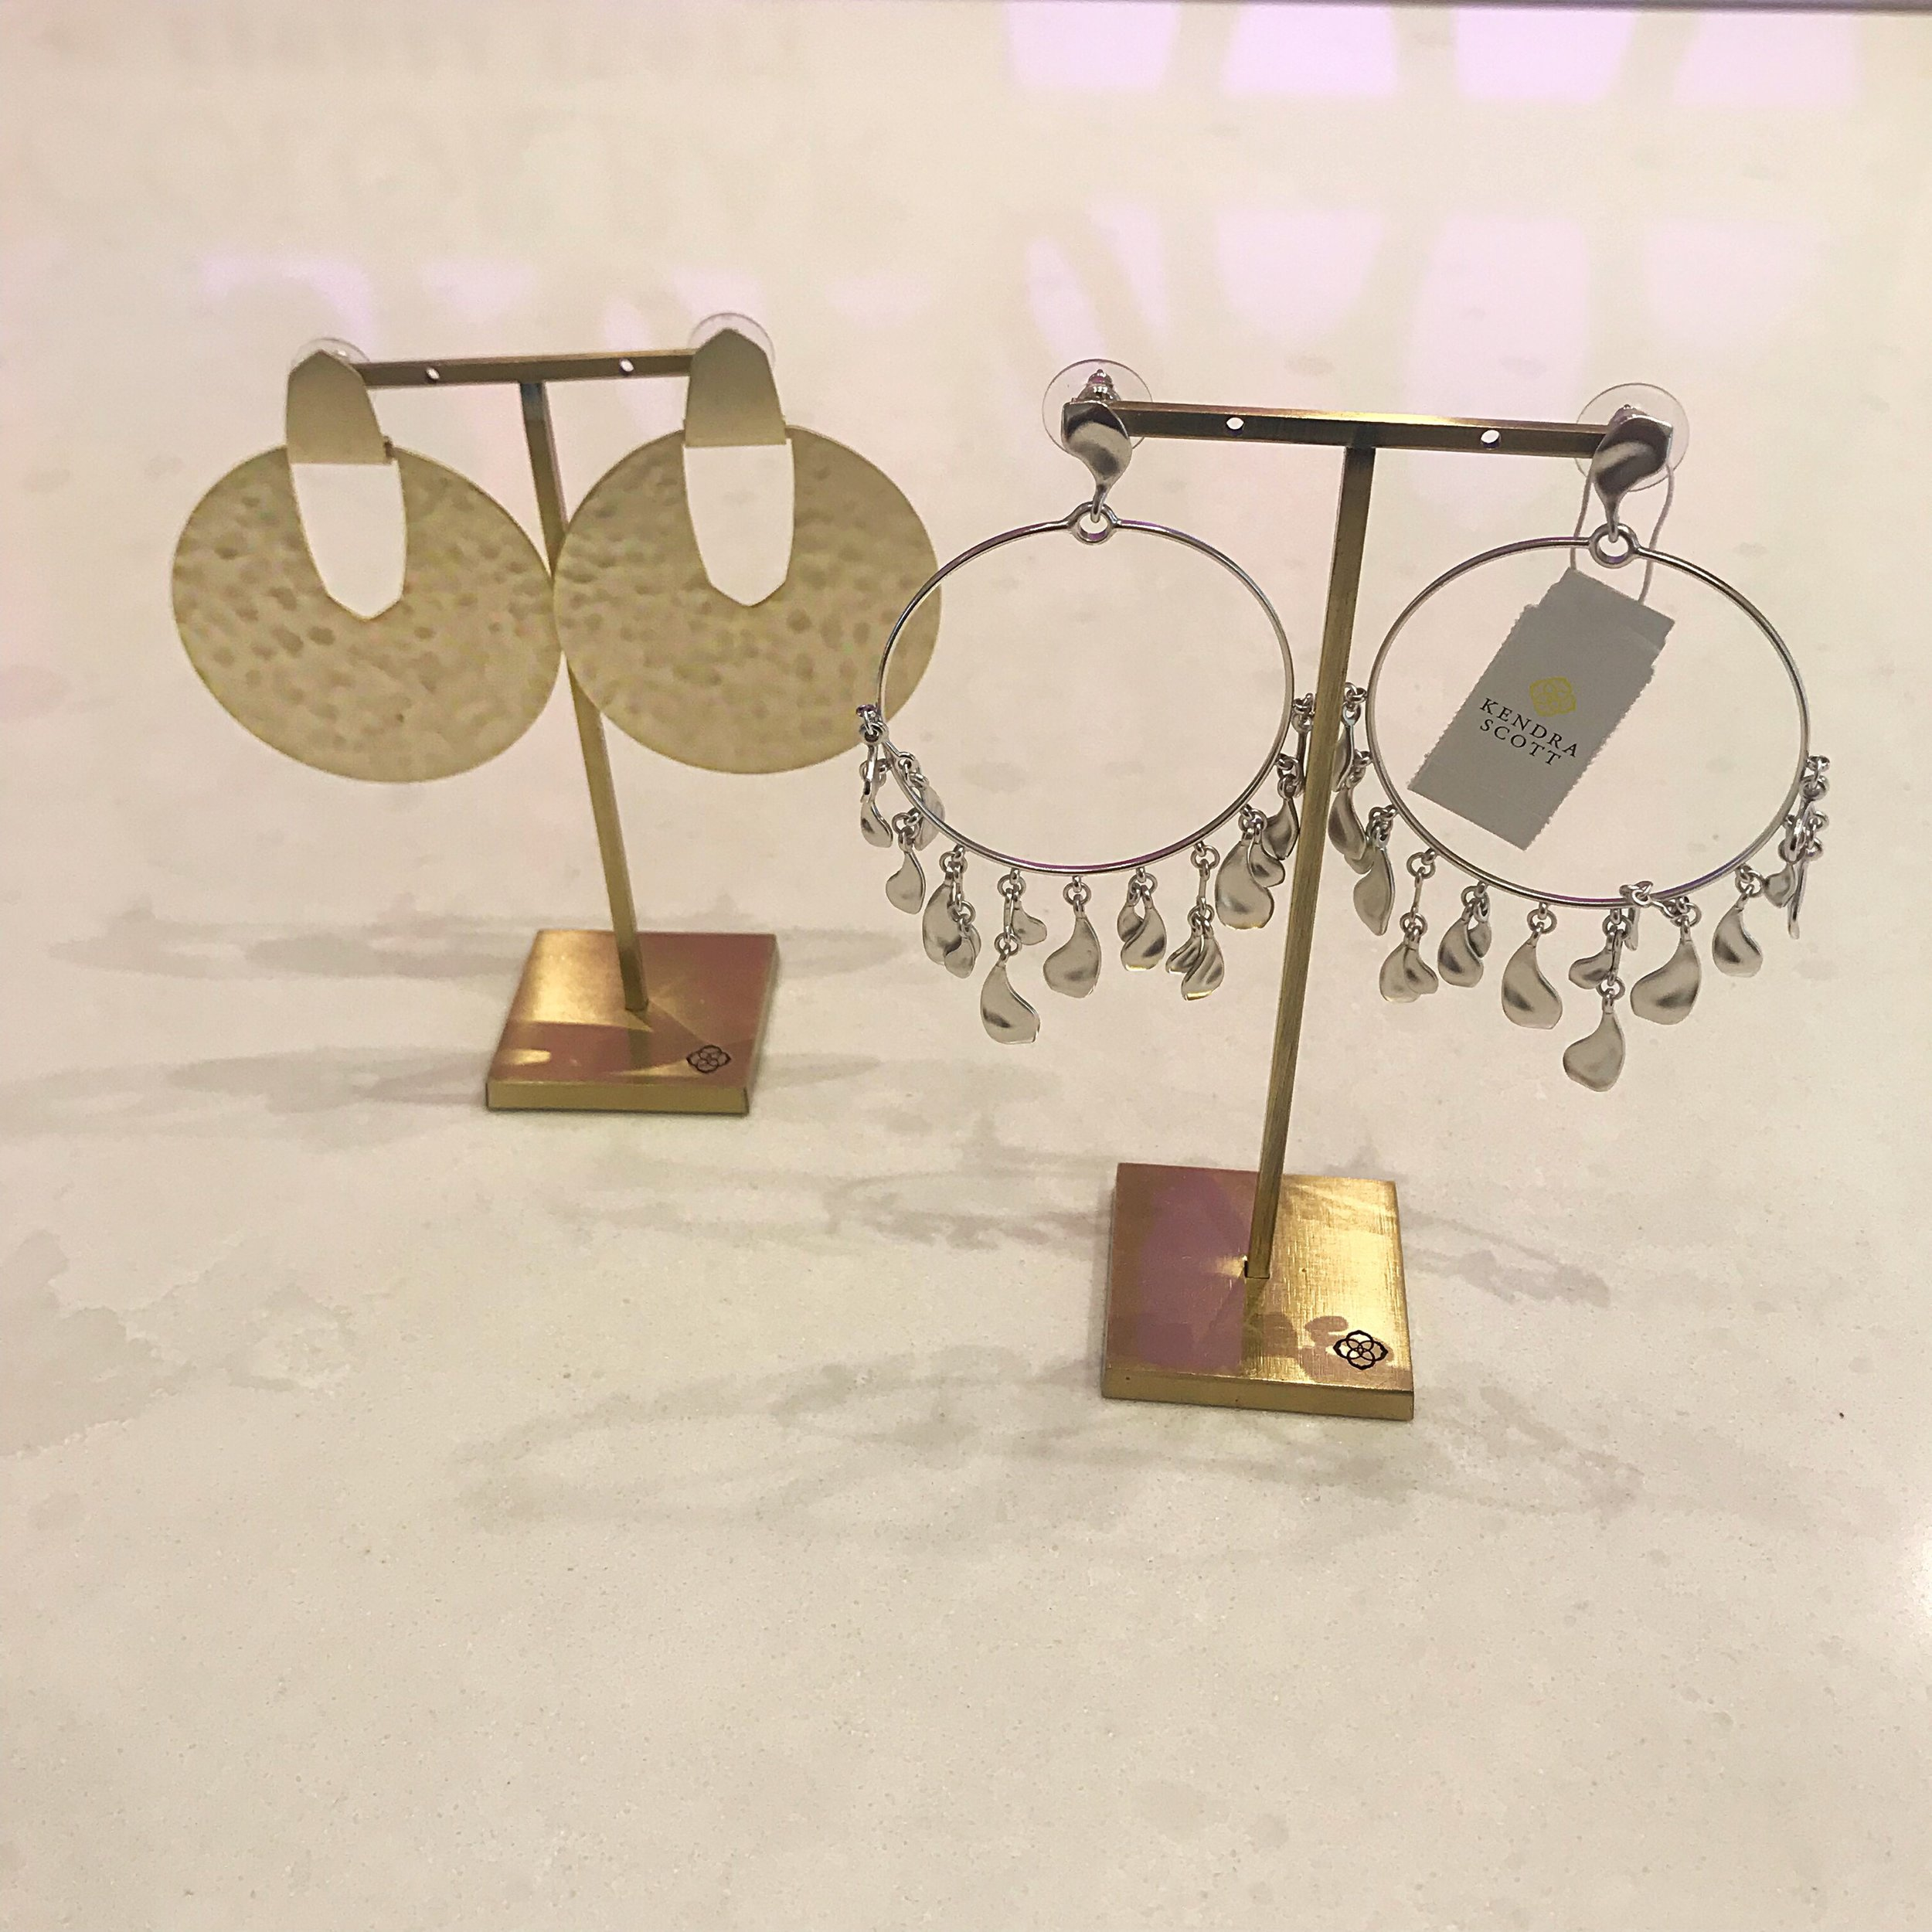 DIDI STATEMENT EARRINGS IN GOLD  and  NATASHA HOOP EARRINGS IN SILVER